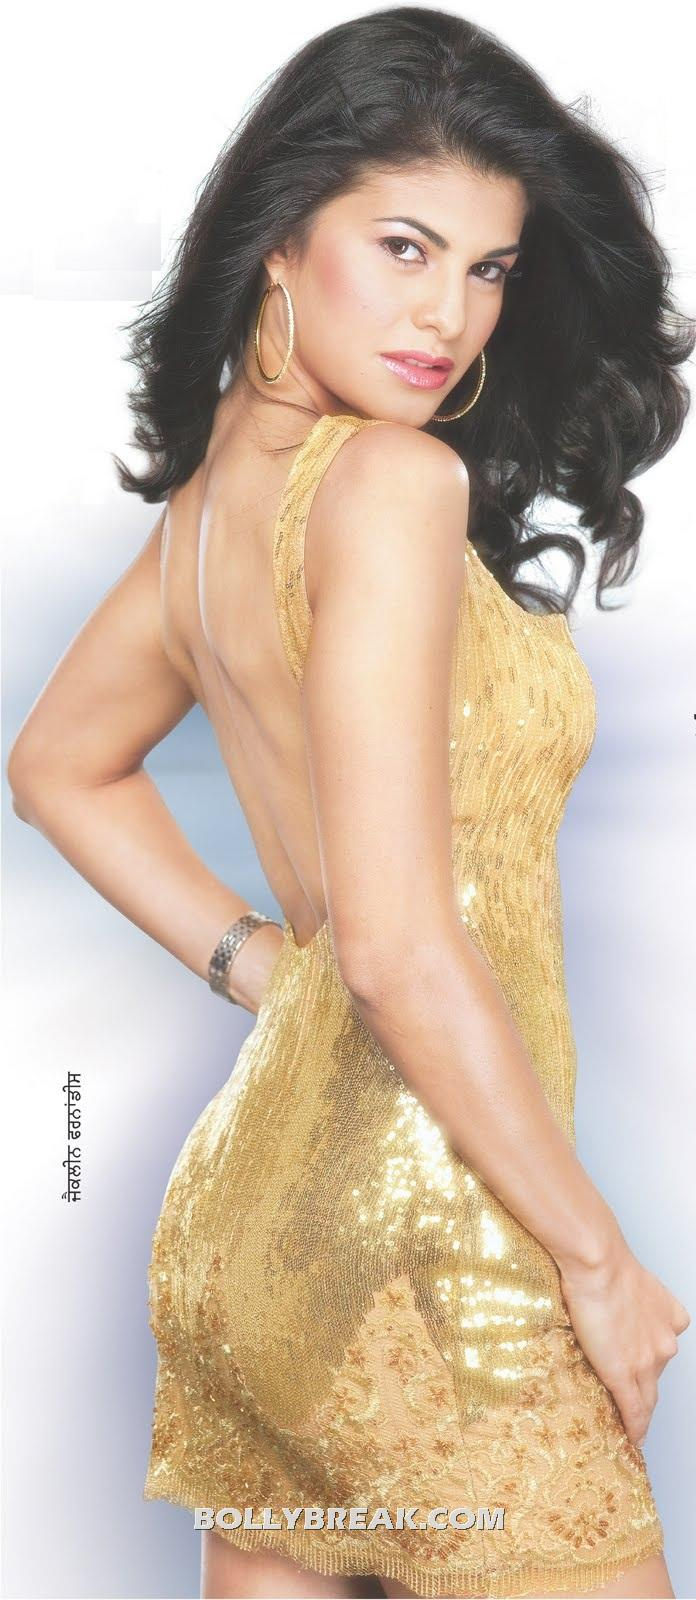 Jaqueline Fernandez in golden sexy dress - Jaqueline Fernandez in Hot Golden short Dress